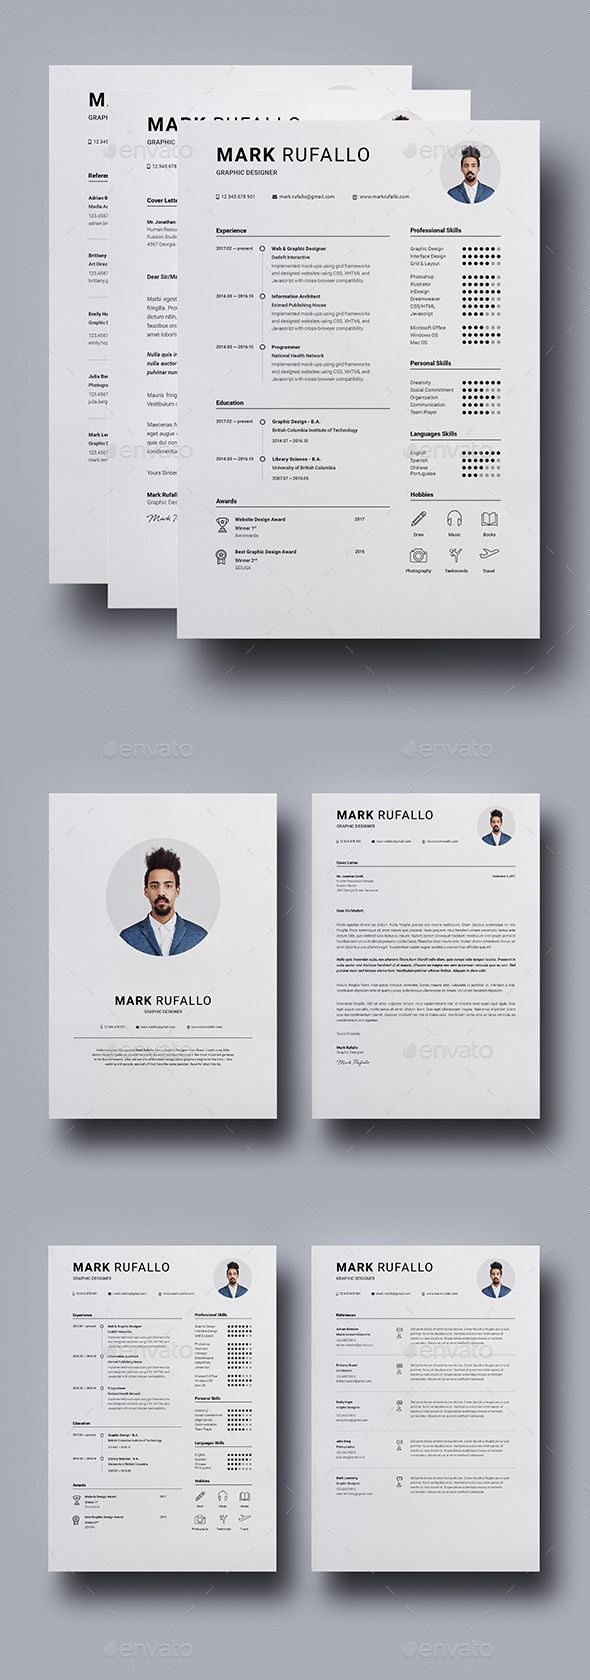 Resume / CV Template InDesign INDD - A4 and Letter Size